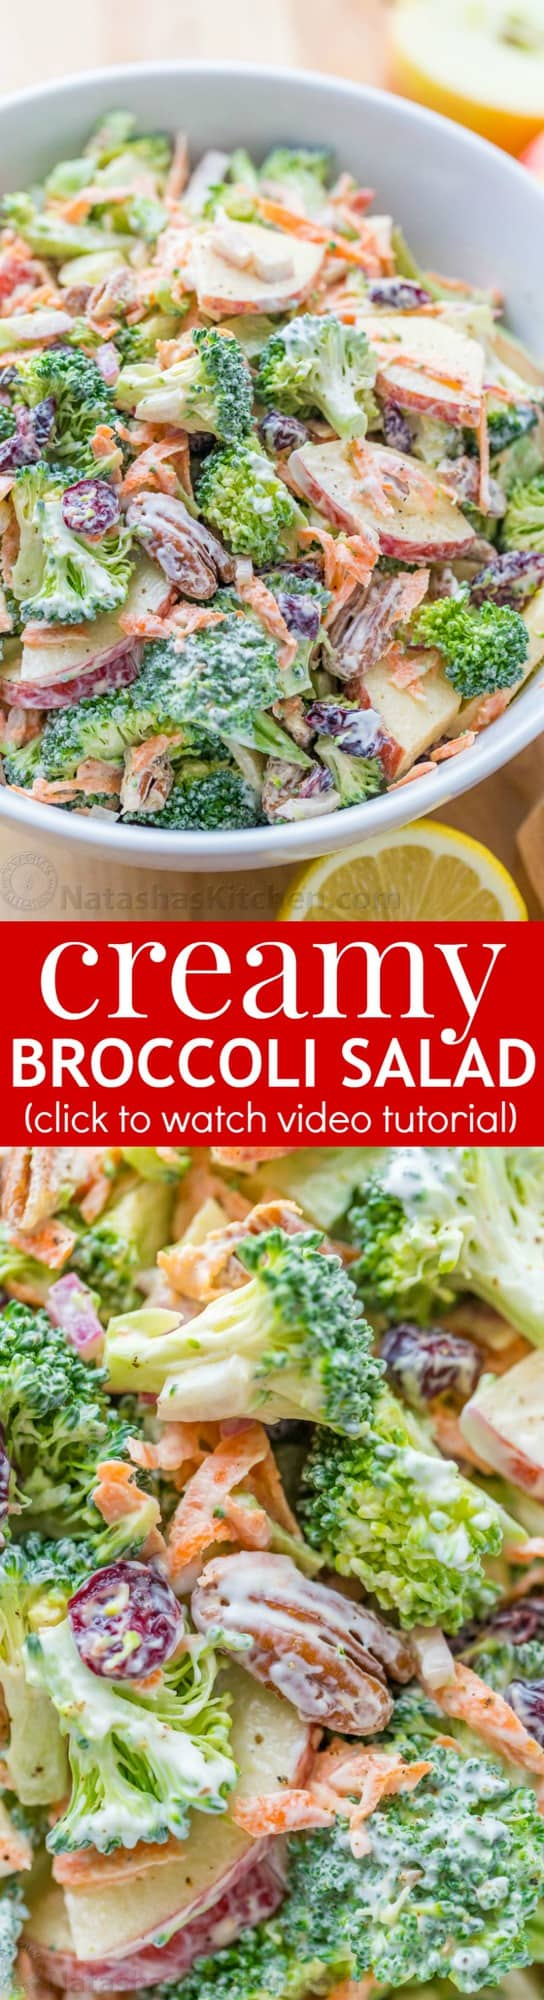 ... salad with capers in lemon vinaigrette broccoli and cauliflower salad